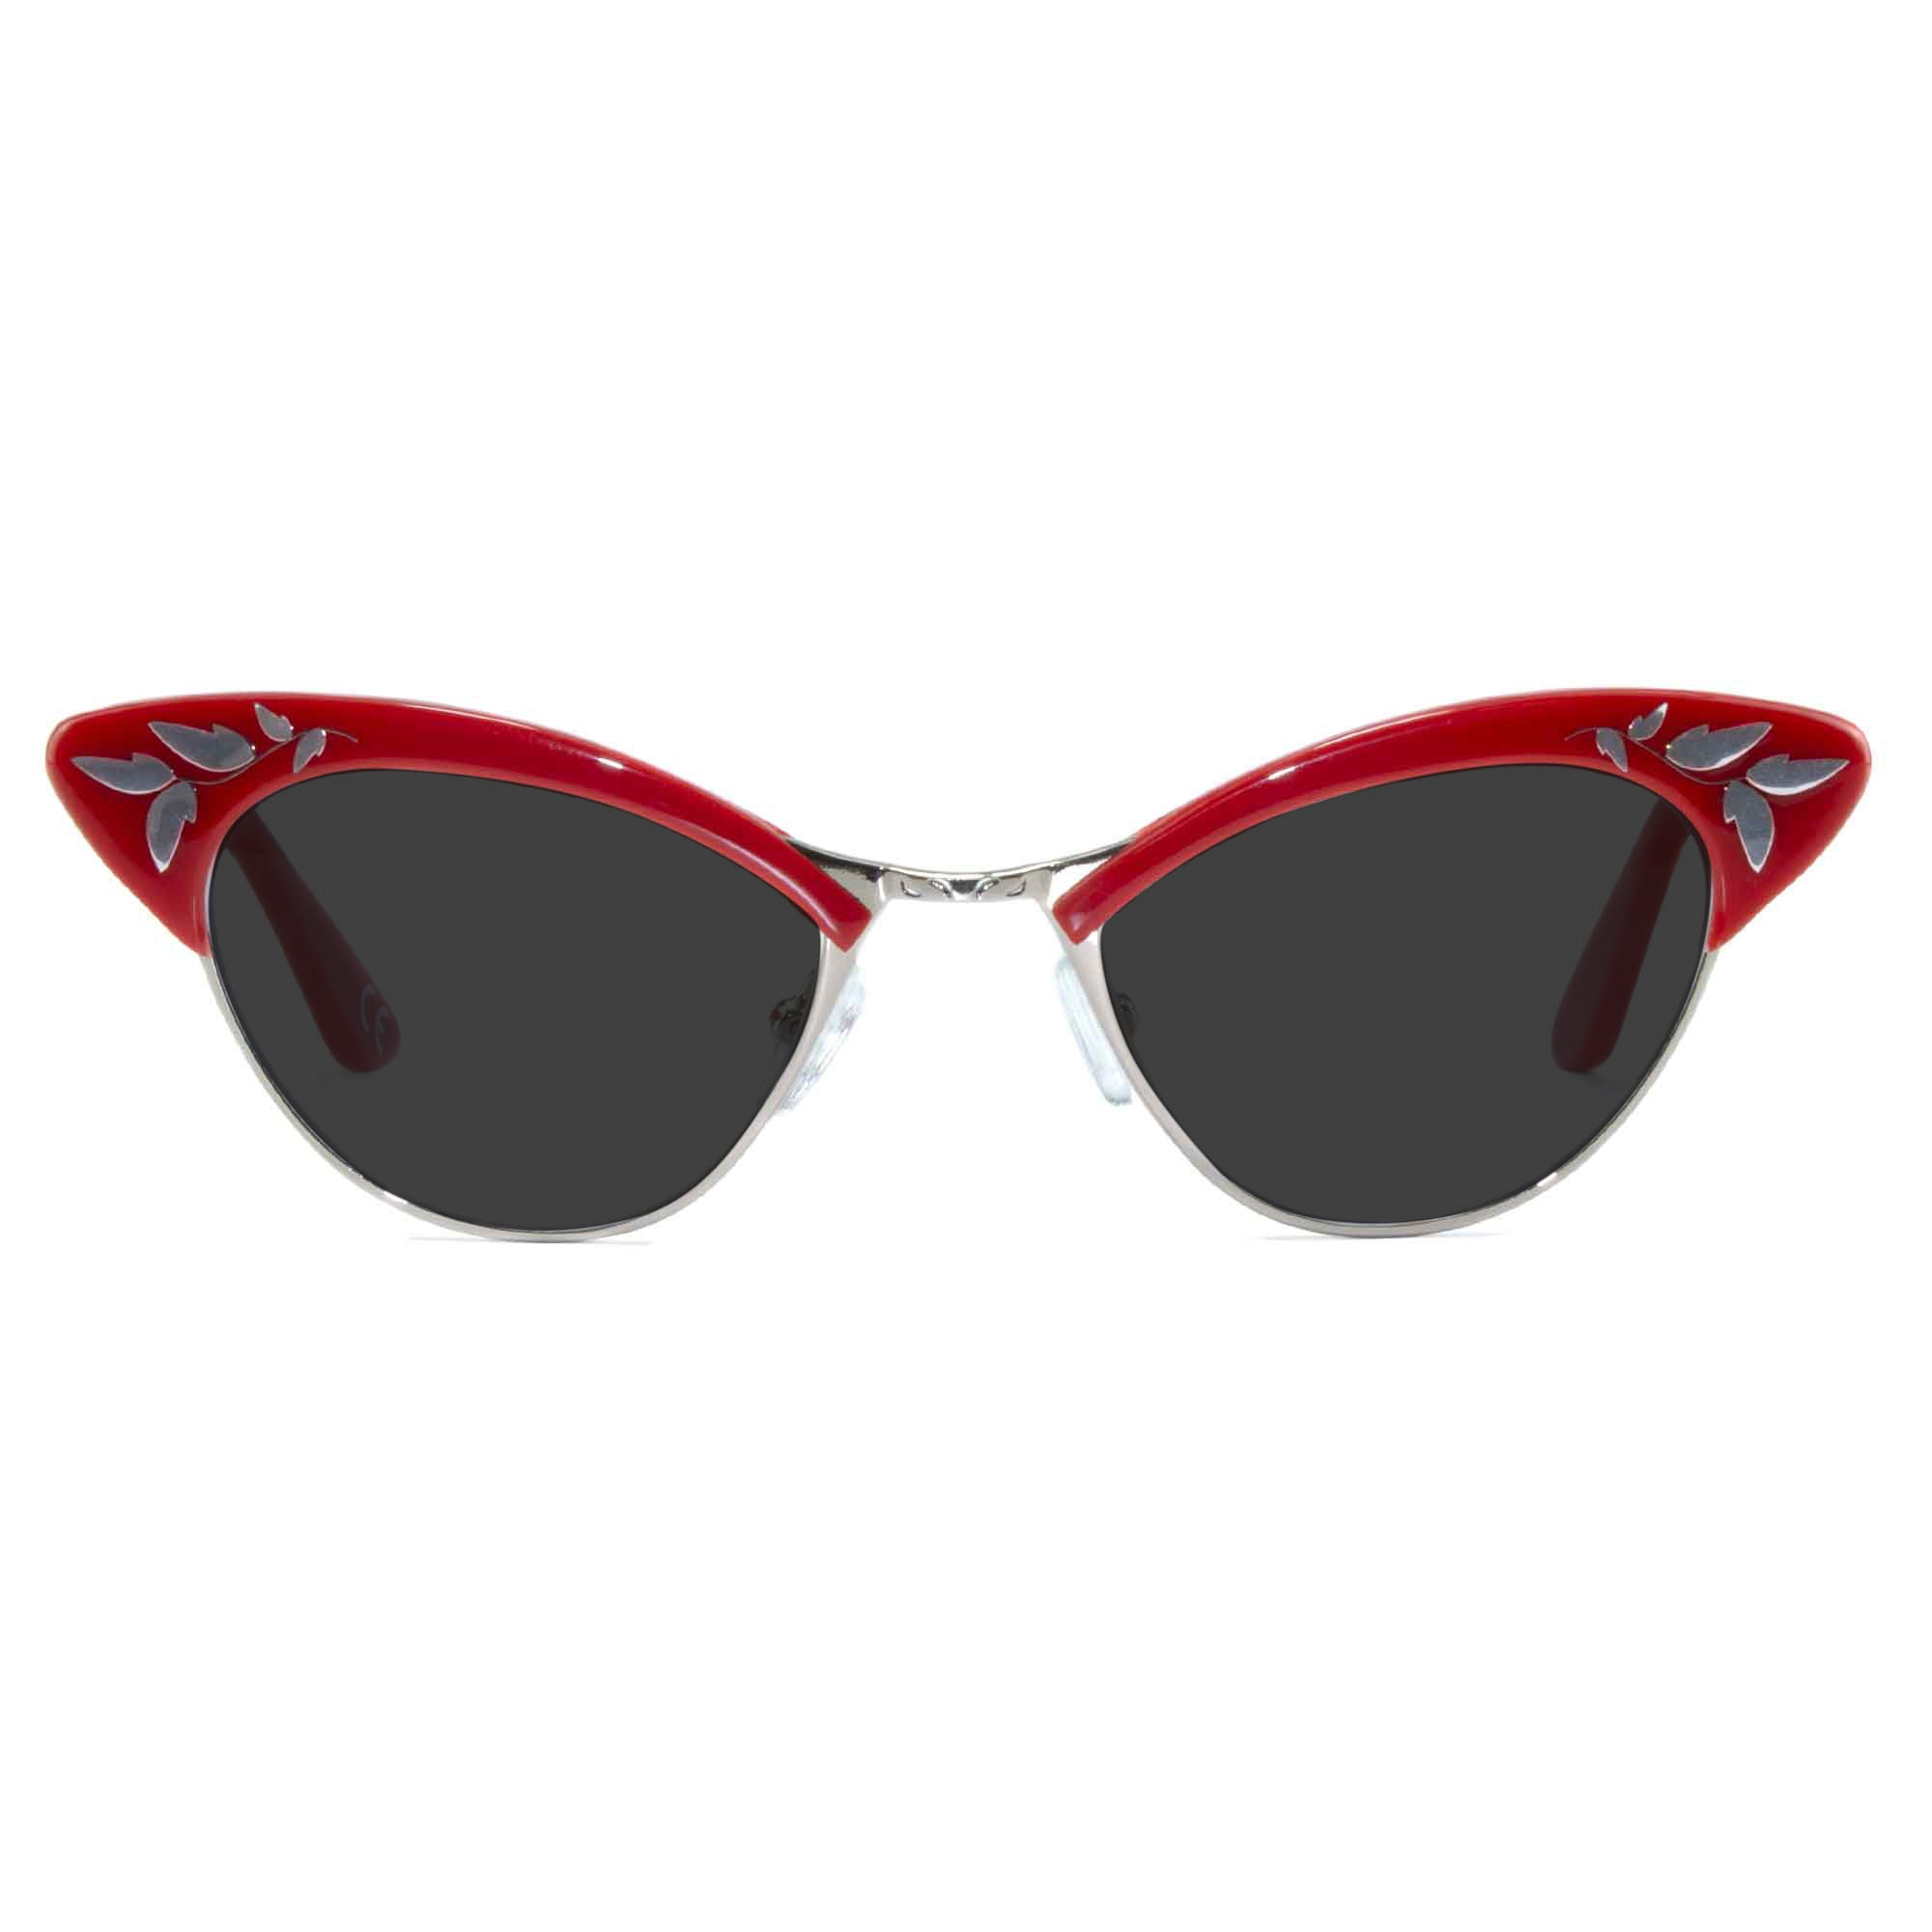 red & gold cat eye sunglasses